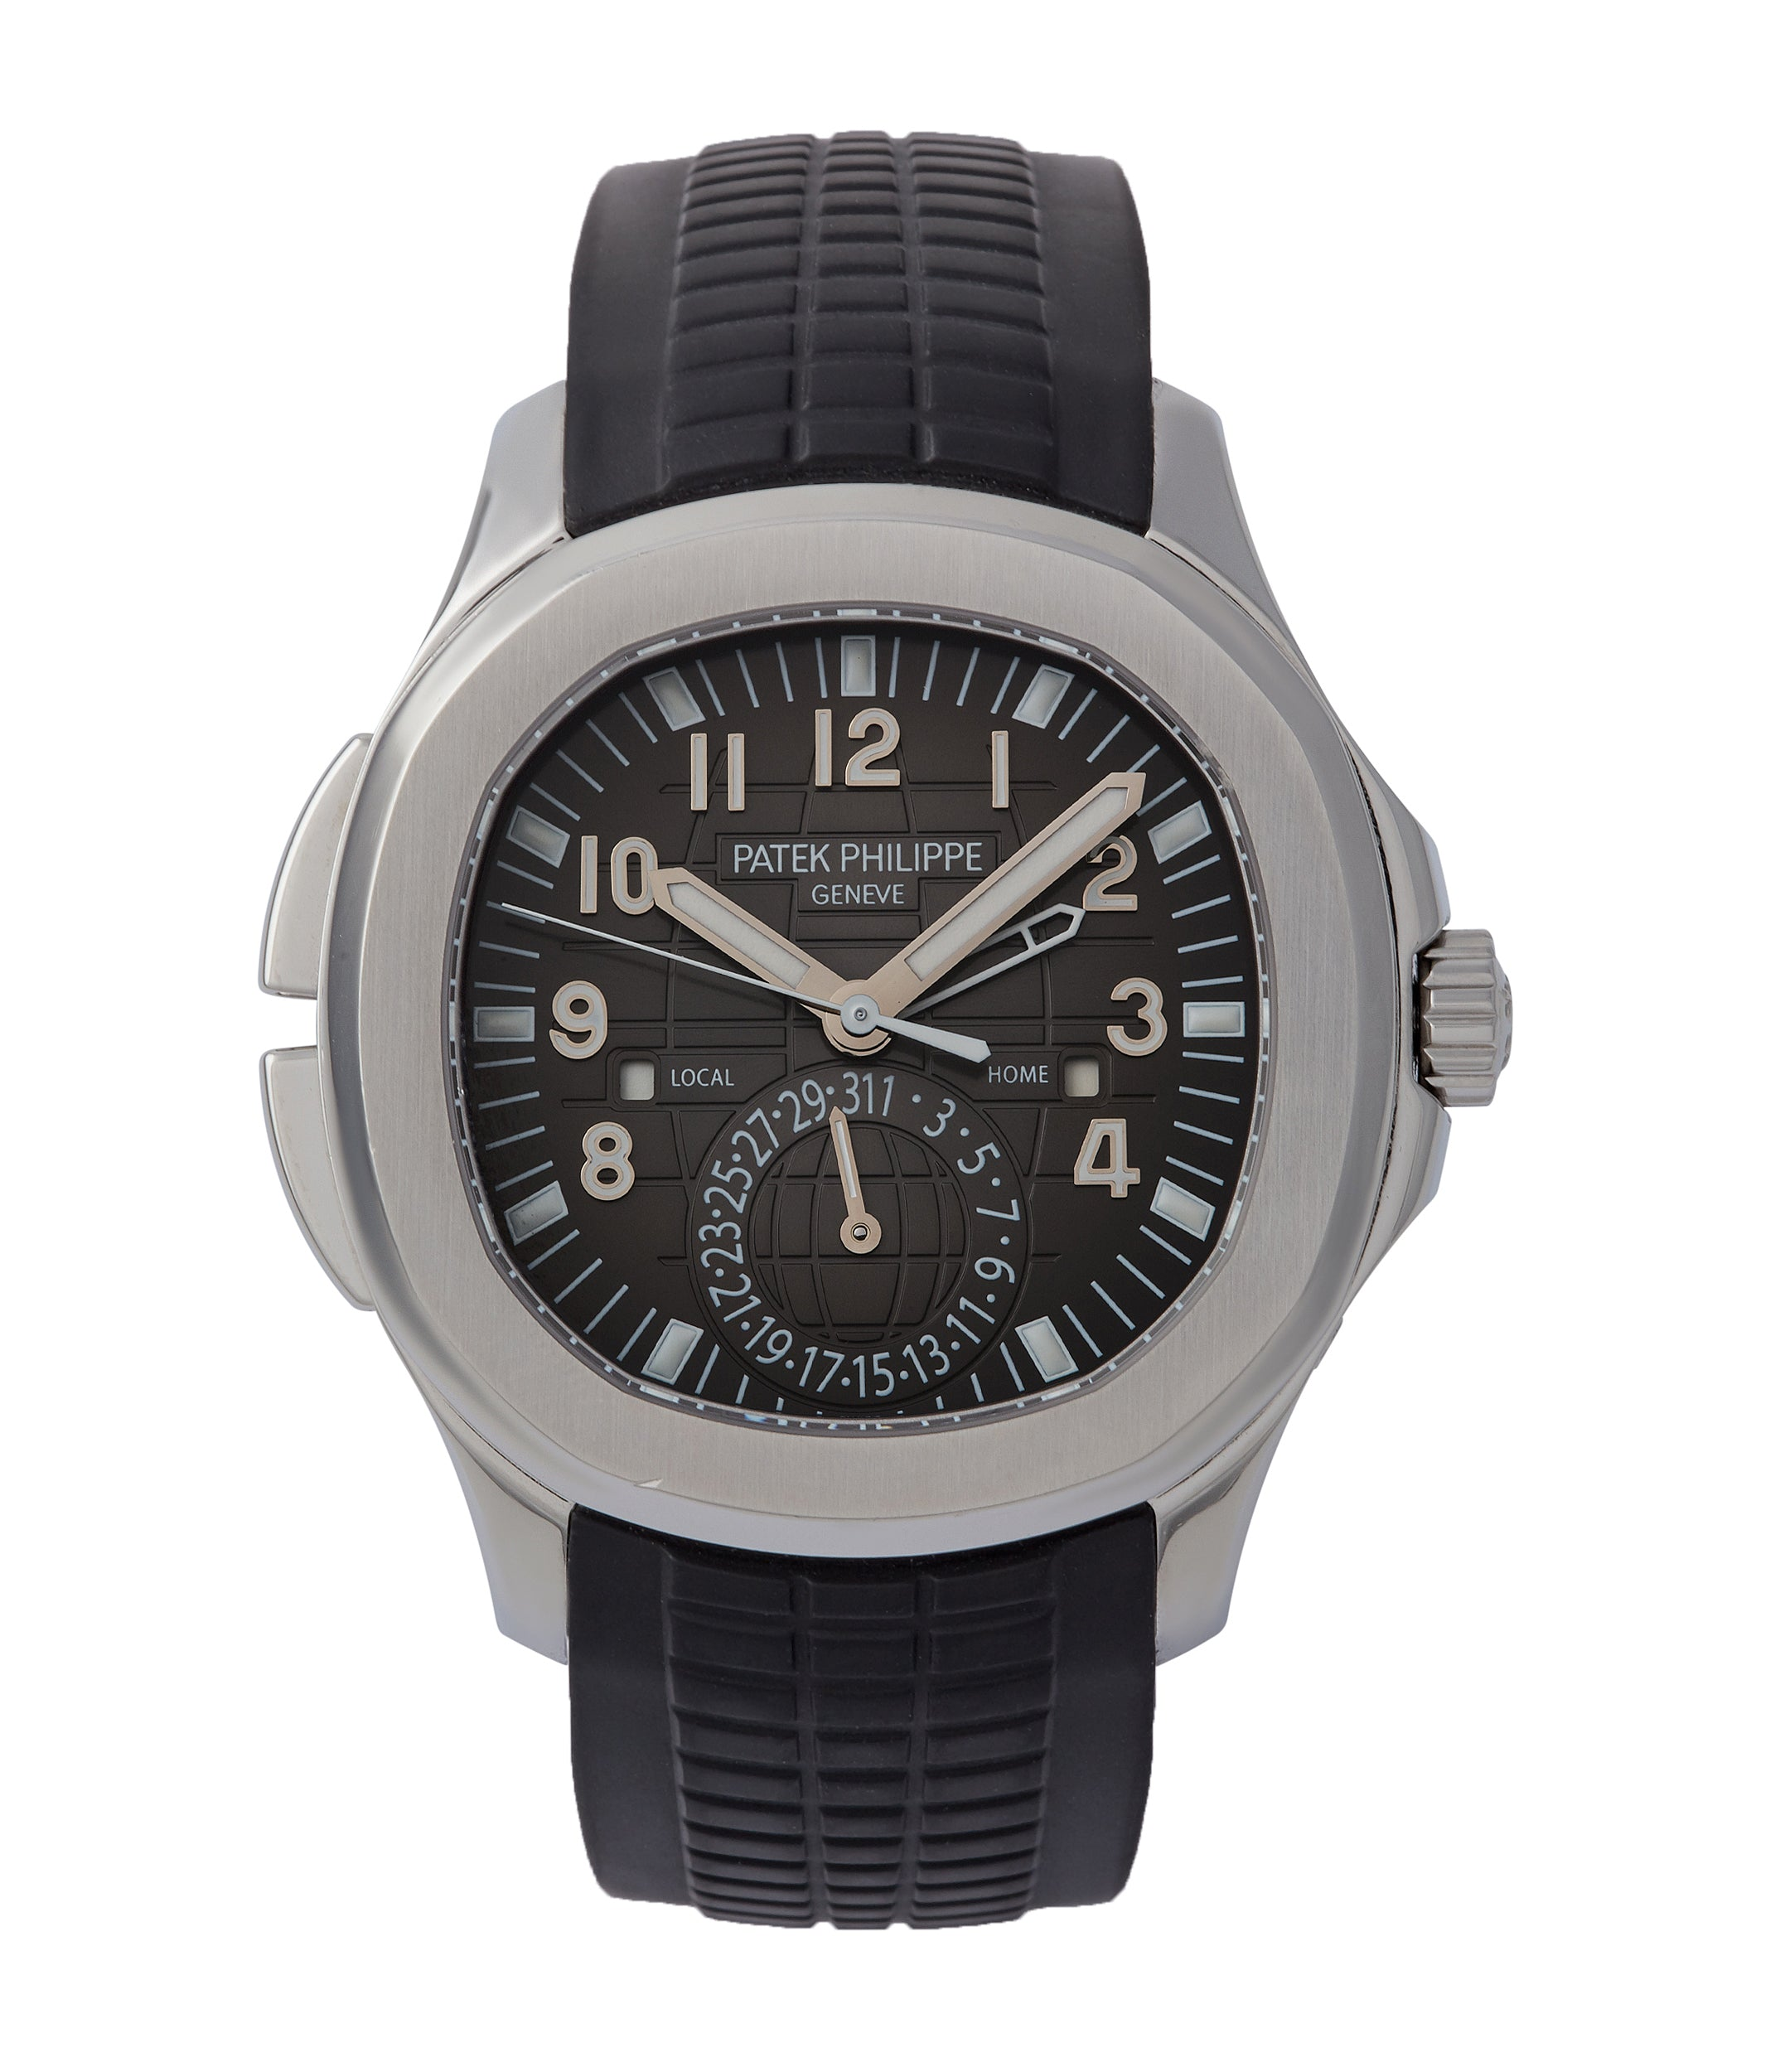 buy Patek Philippe Aquanaut Travel-time 5164A-001 steel sports traveller pre-owned watch for sale online at A Collected Man London specialist rare watches